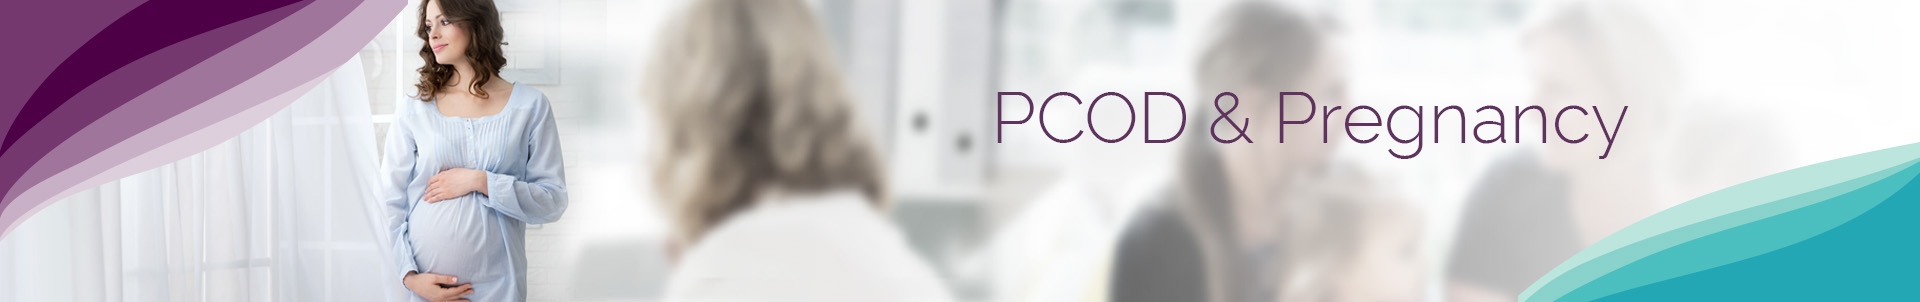 PCOD and Pregnancy at Apollo Cradle